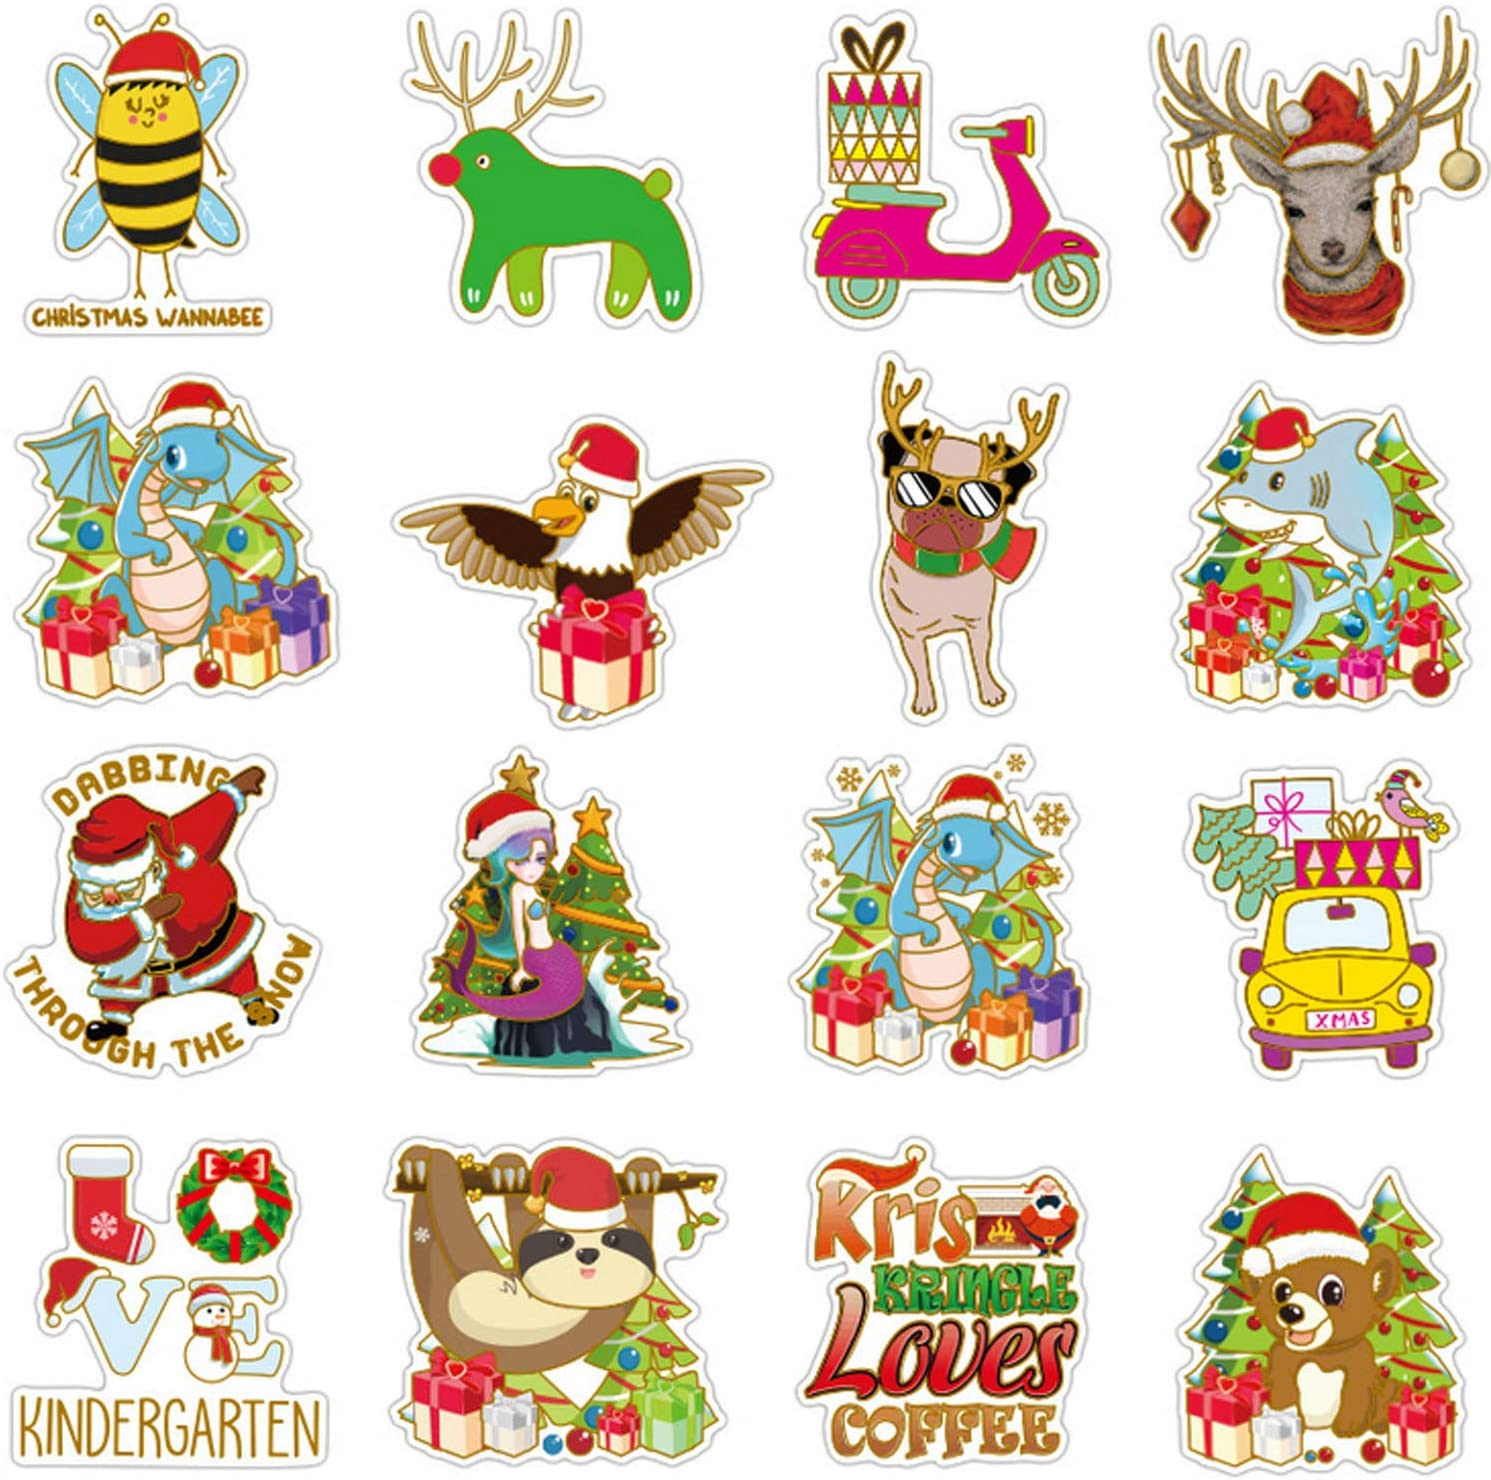 Christmas Window Clings Snowflake Decorations Lovely Merry Christmas Santa Reindeer Gift Graffiti Decals Christmas Window Decorations Party Supplies Christmas stickers for water bottles 52PCS